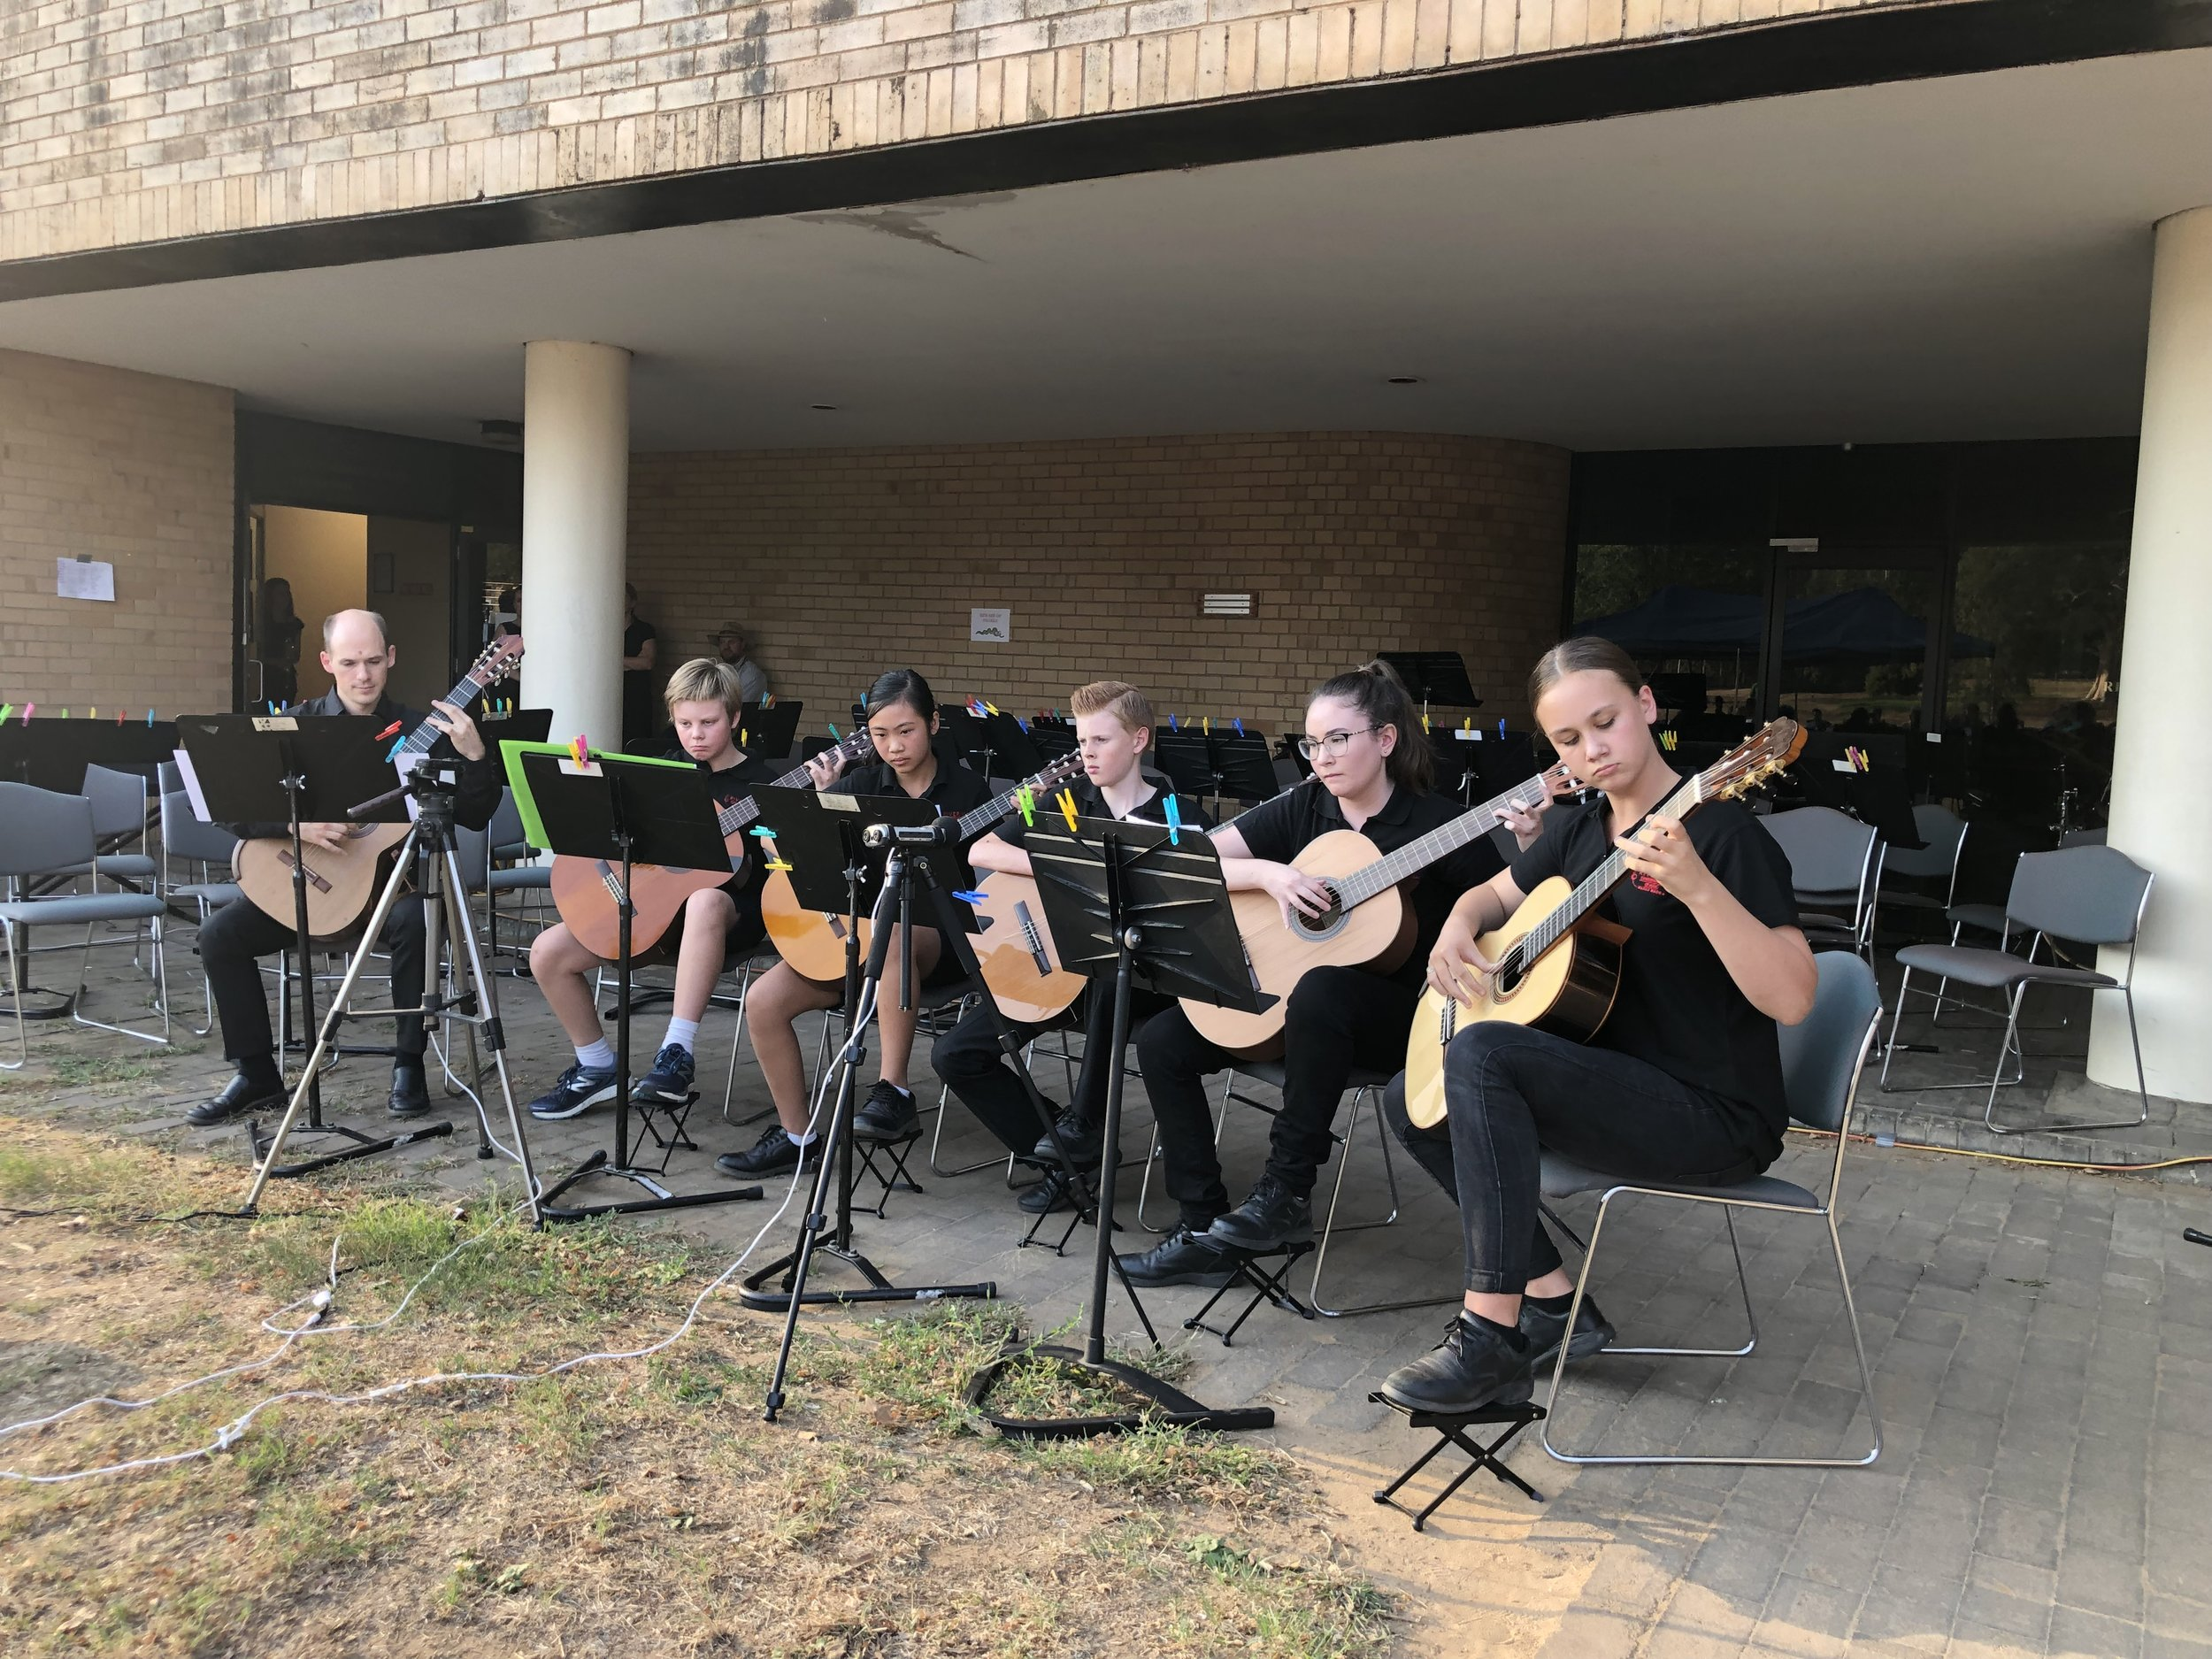 Guitarists Breakfast recently performing at the RCM Outdoor Ensembles Concert in March 2019.